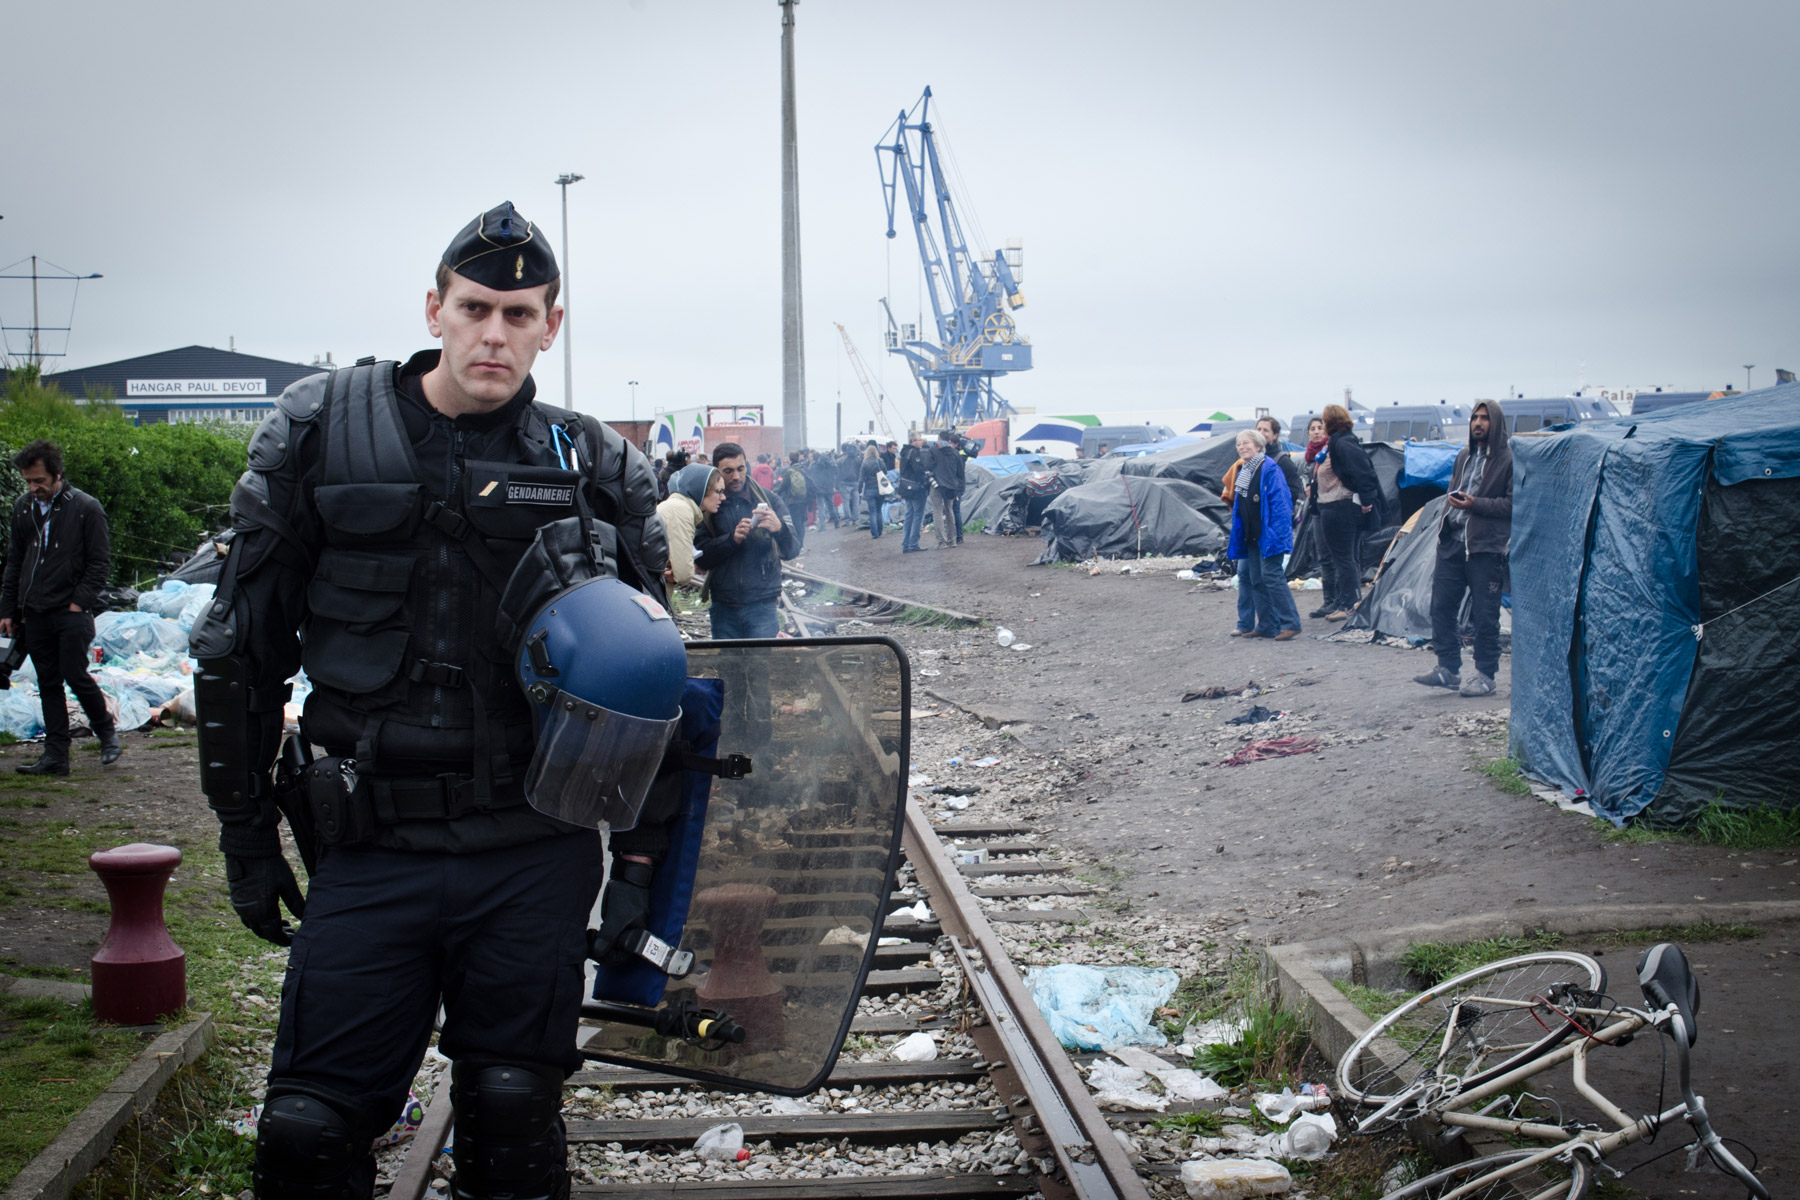 Chaos in Calais: lorry drivers block motorways in 'operation escargot' protest